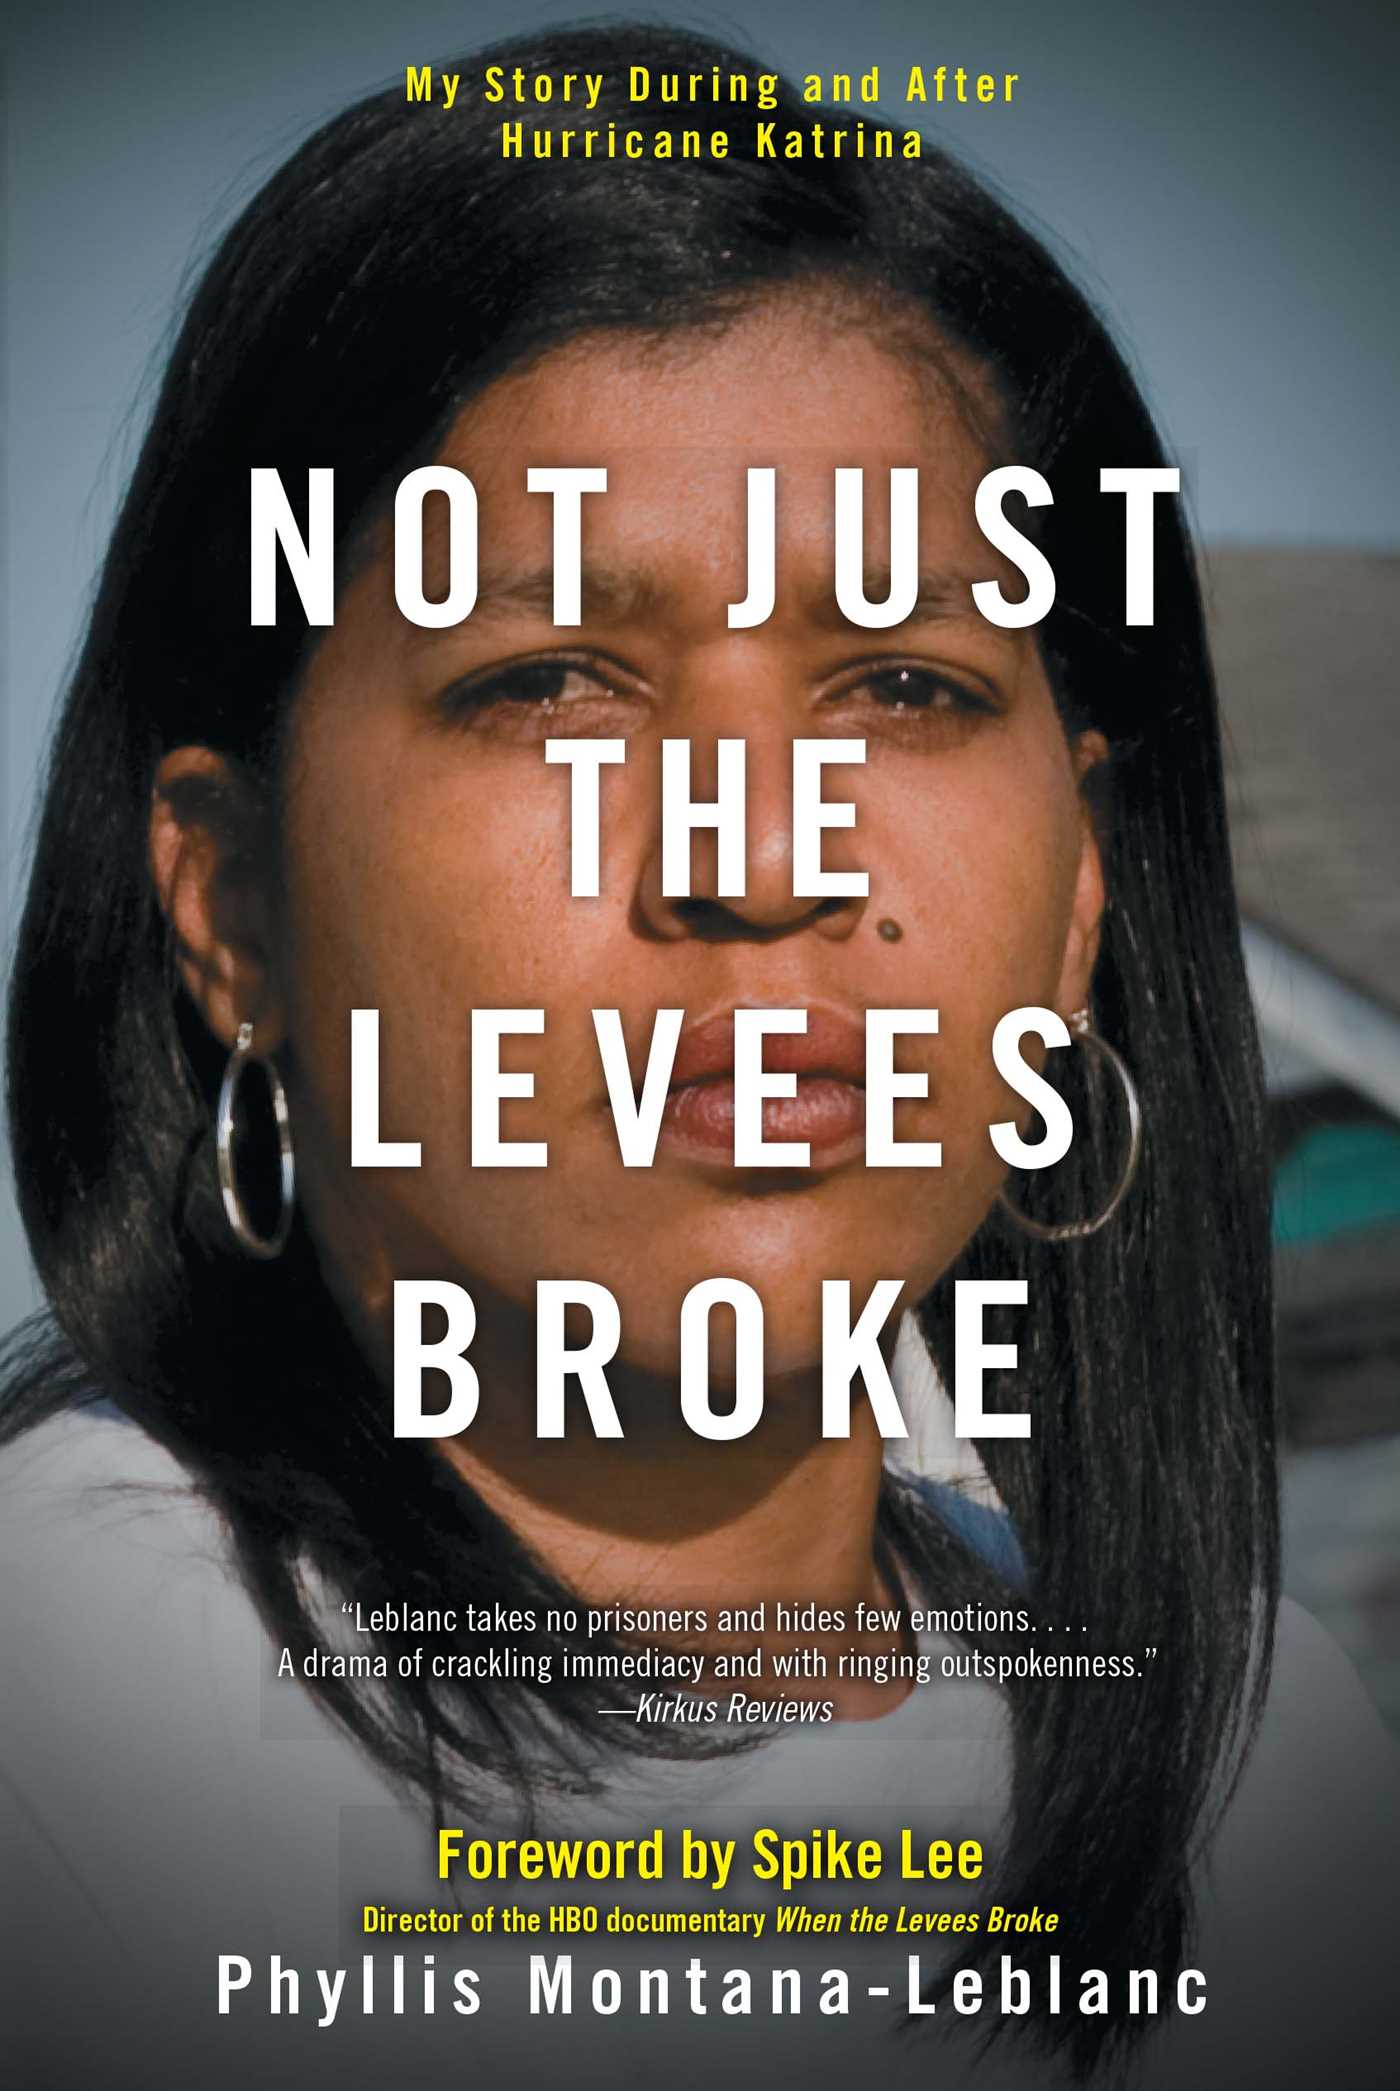 Not-just-the-levees-broke-9781416563471_hr